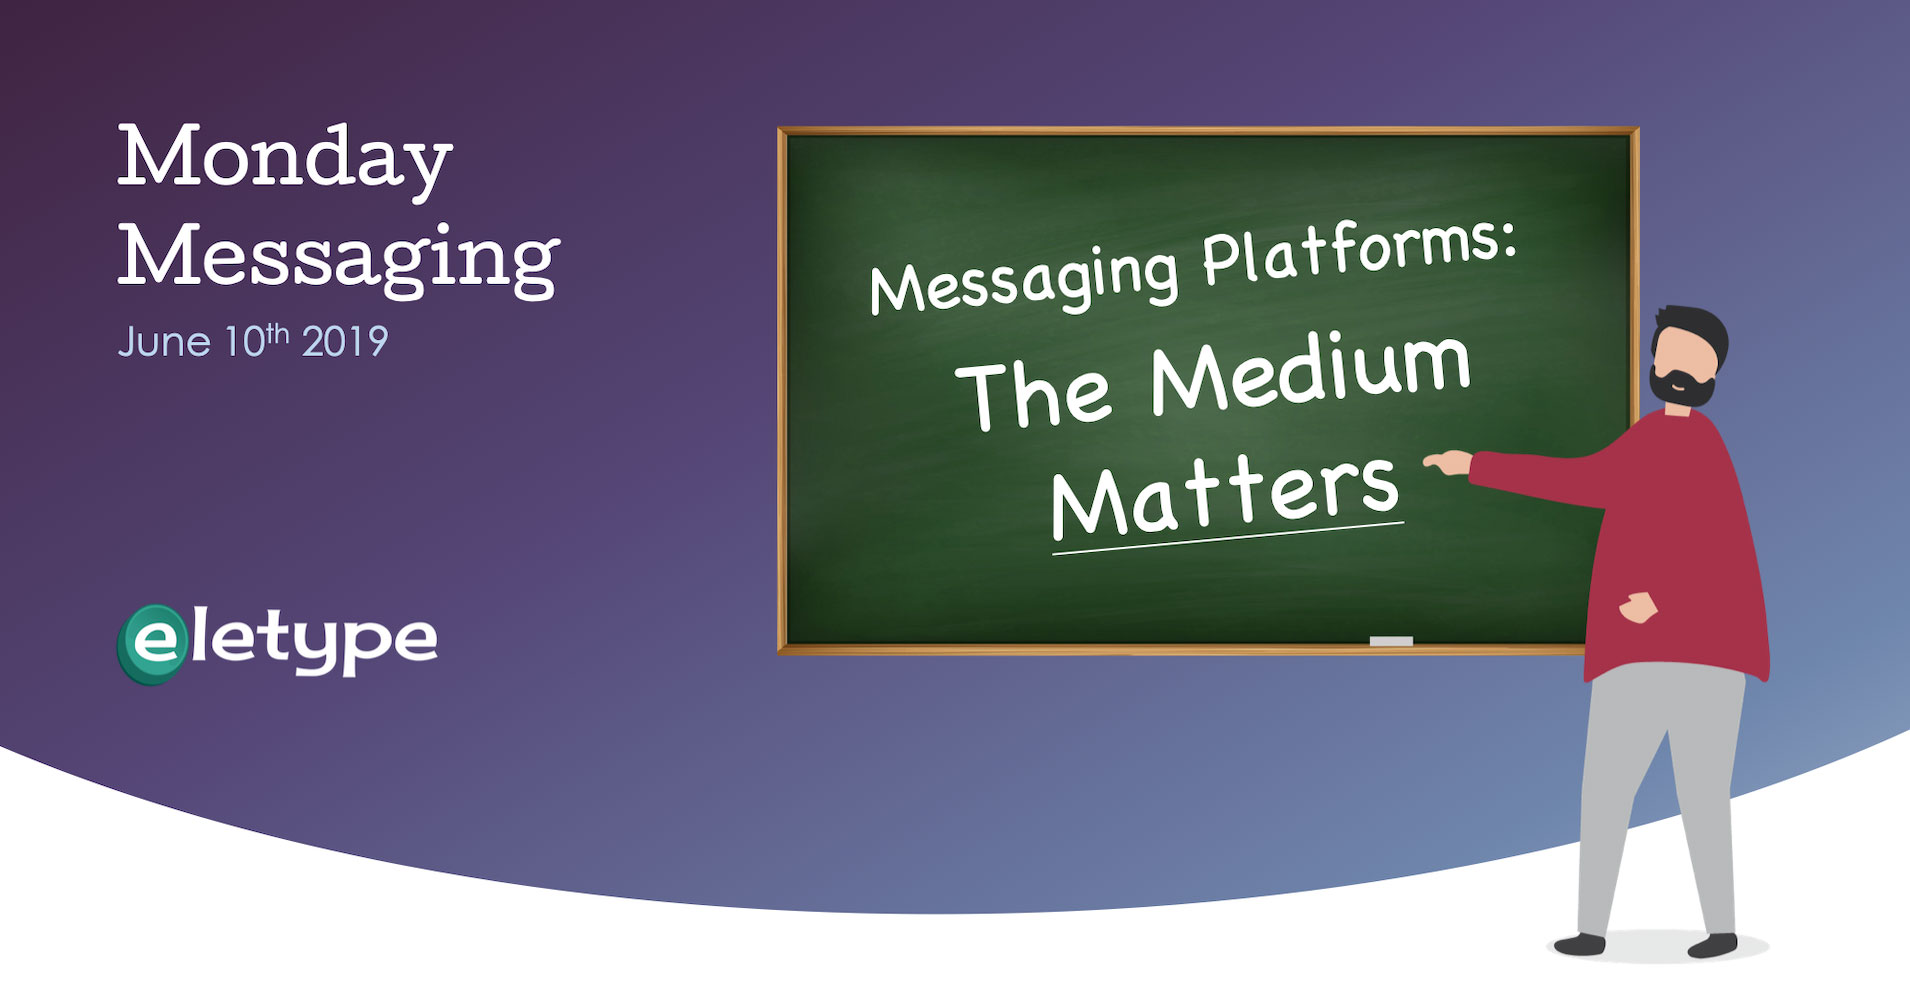 Messaging Platforms - The Medium Matters